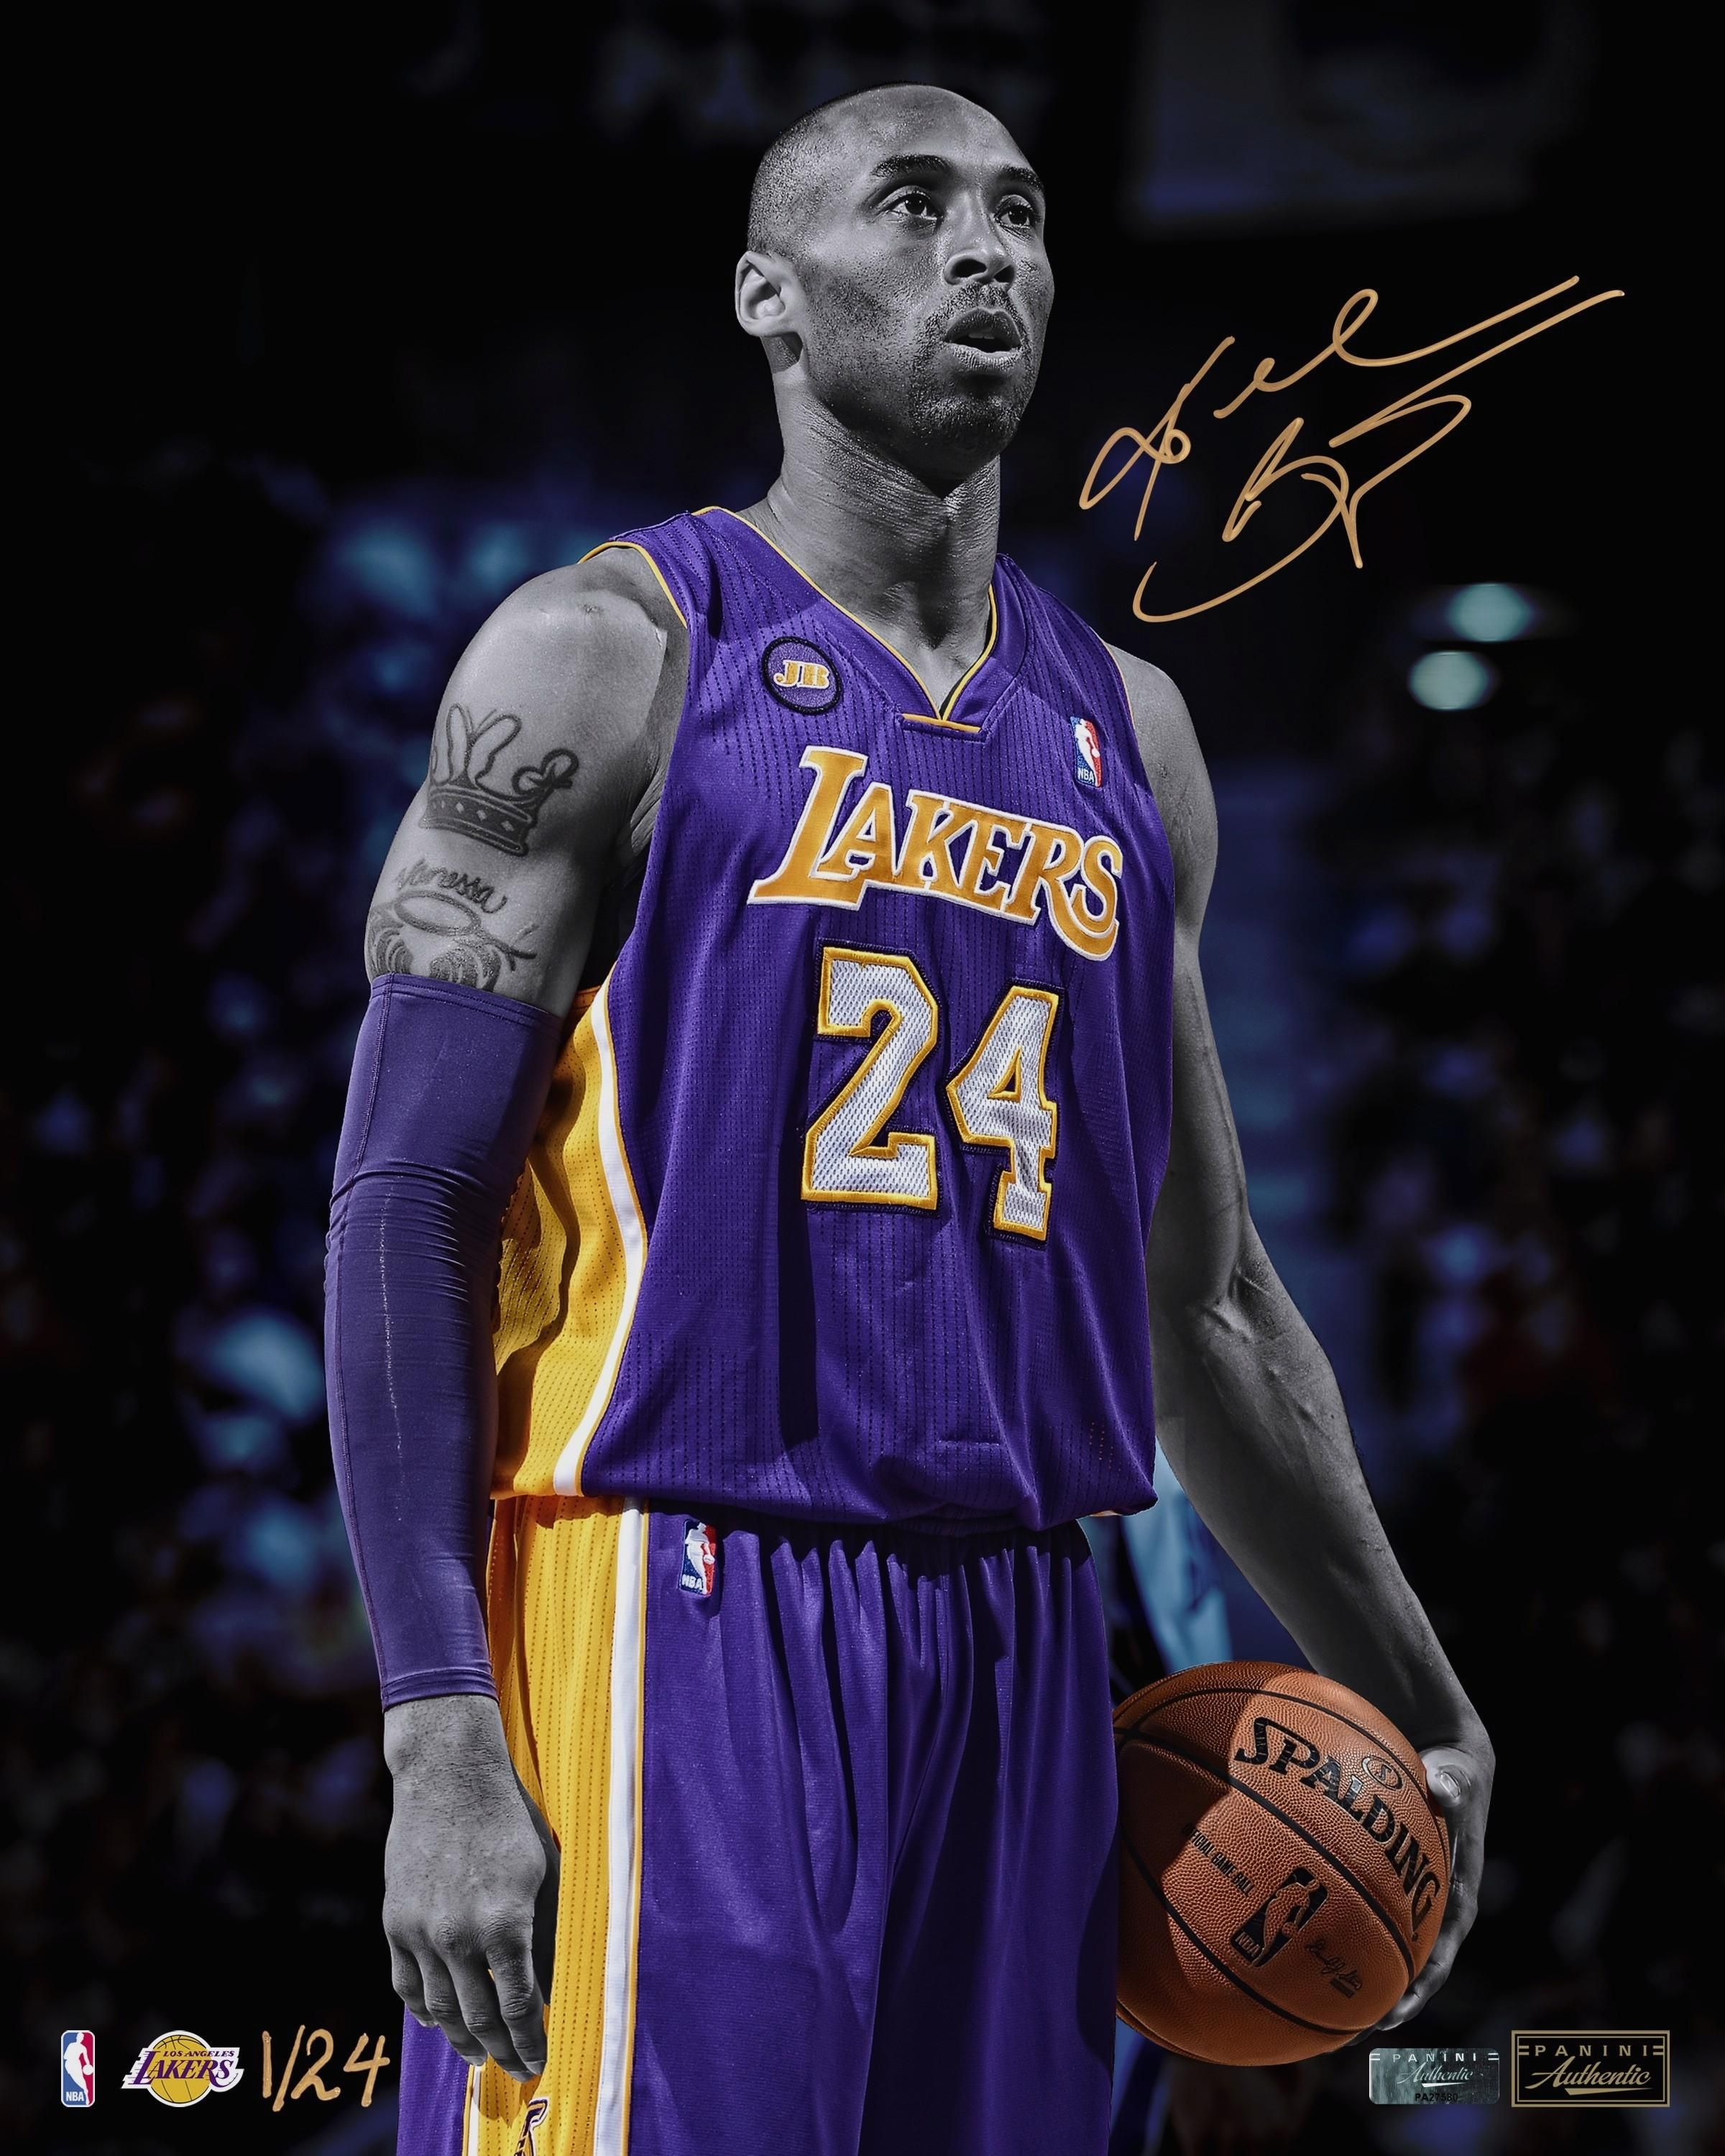 Kobe Bryant Wallpapers Hd Download - Kobe Bryant Poster , HD Wallpaper & Backgrounds